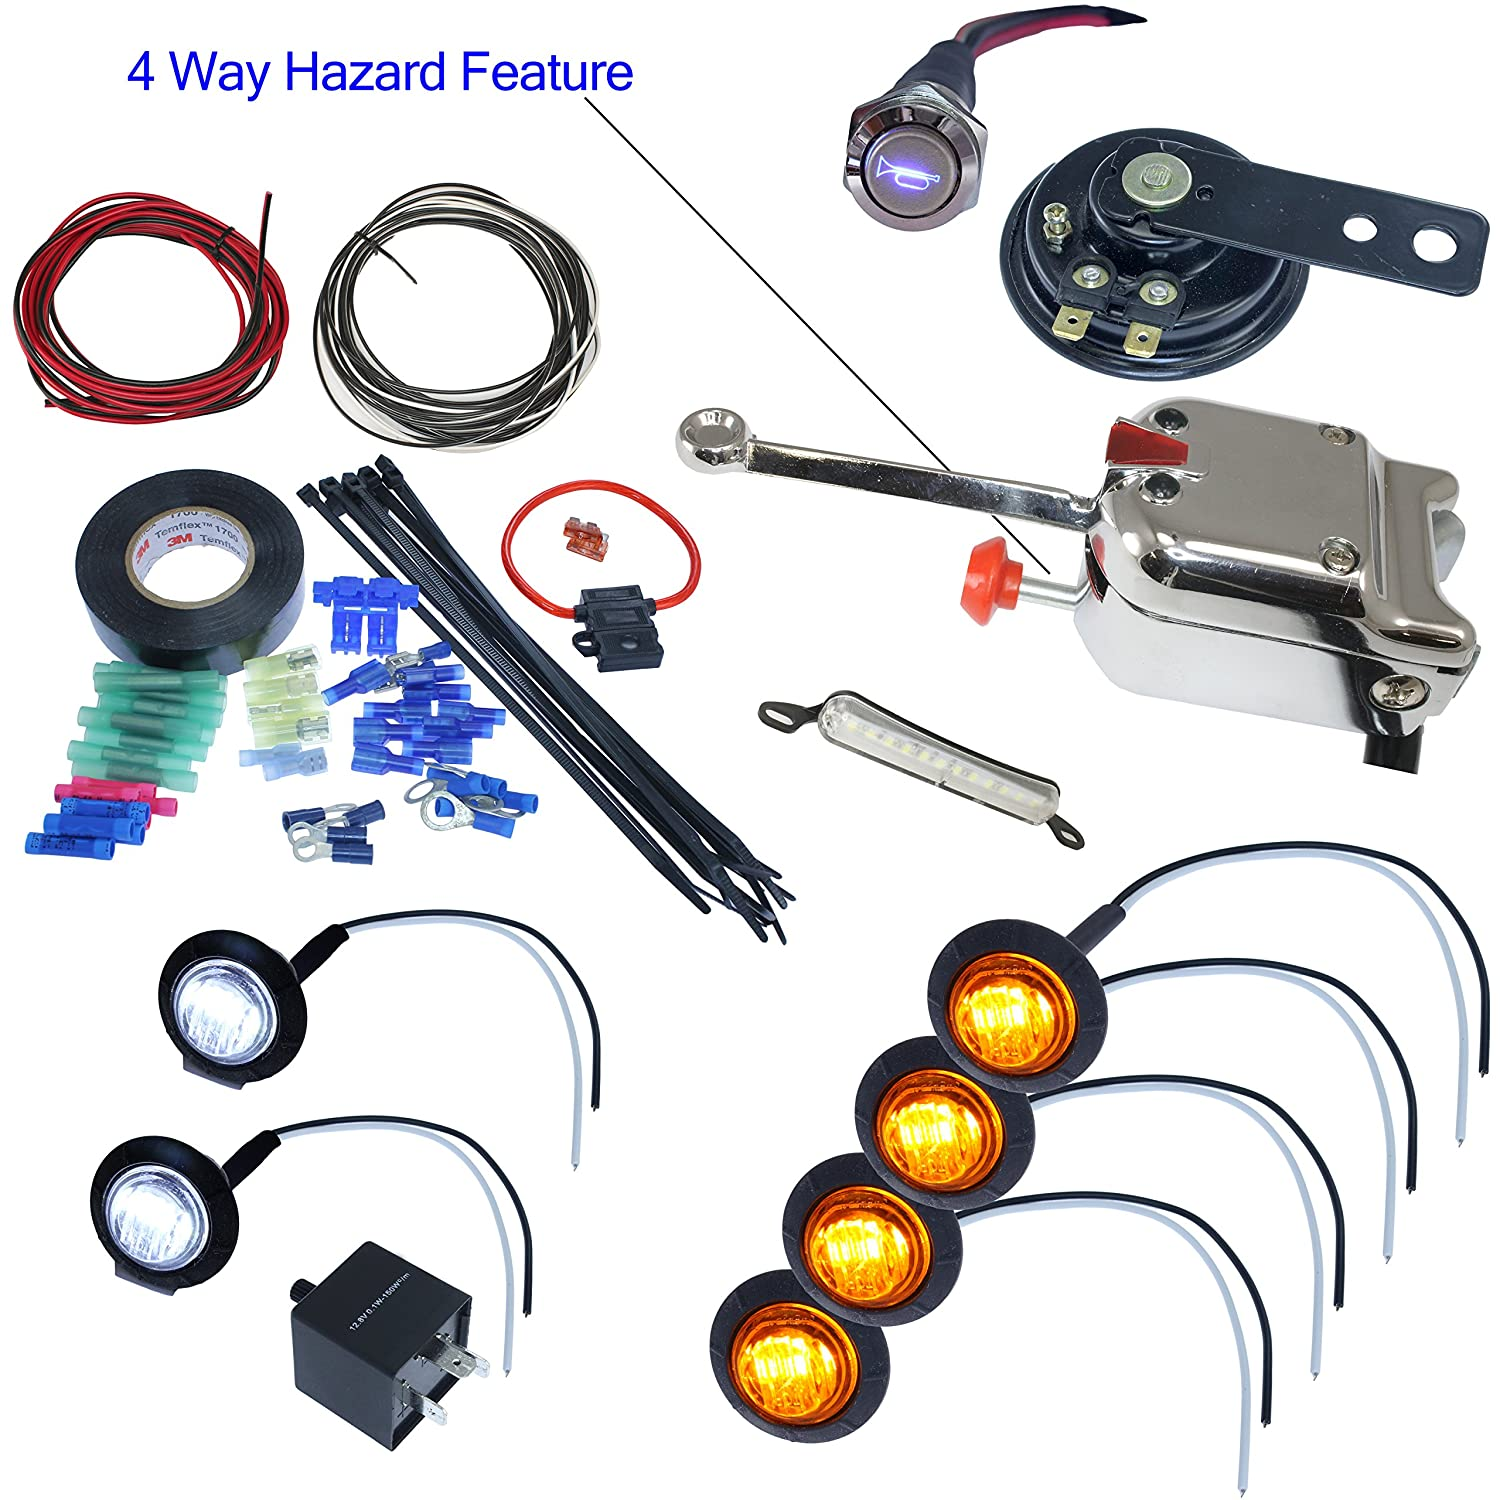 With License Plate LED, Round LED Lights UTV Heavy Duty Lever Switch Turn Signal Kit with Horn and Hardware